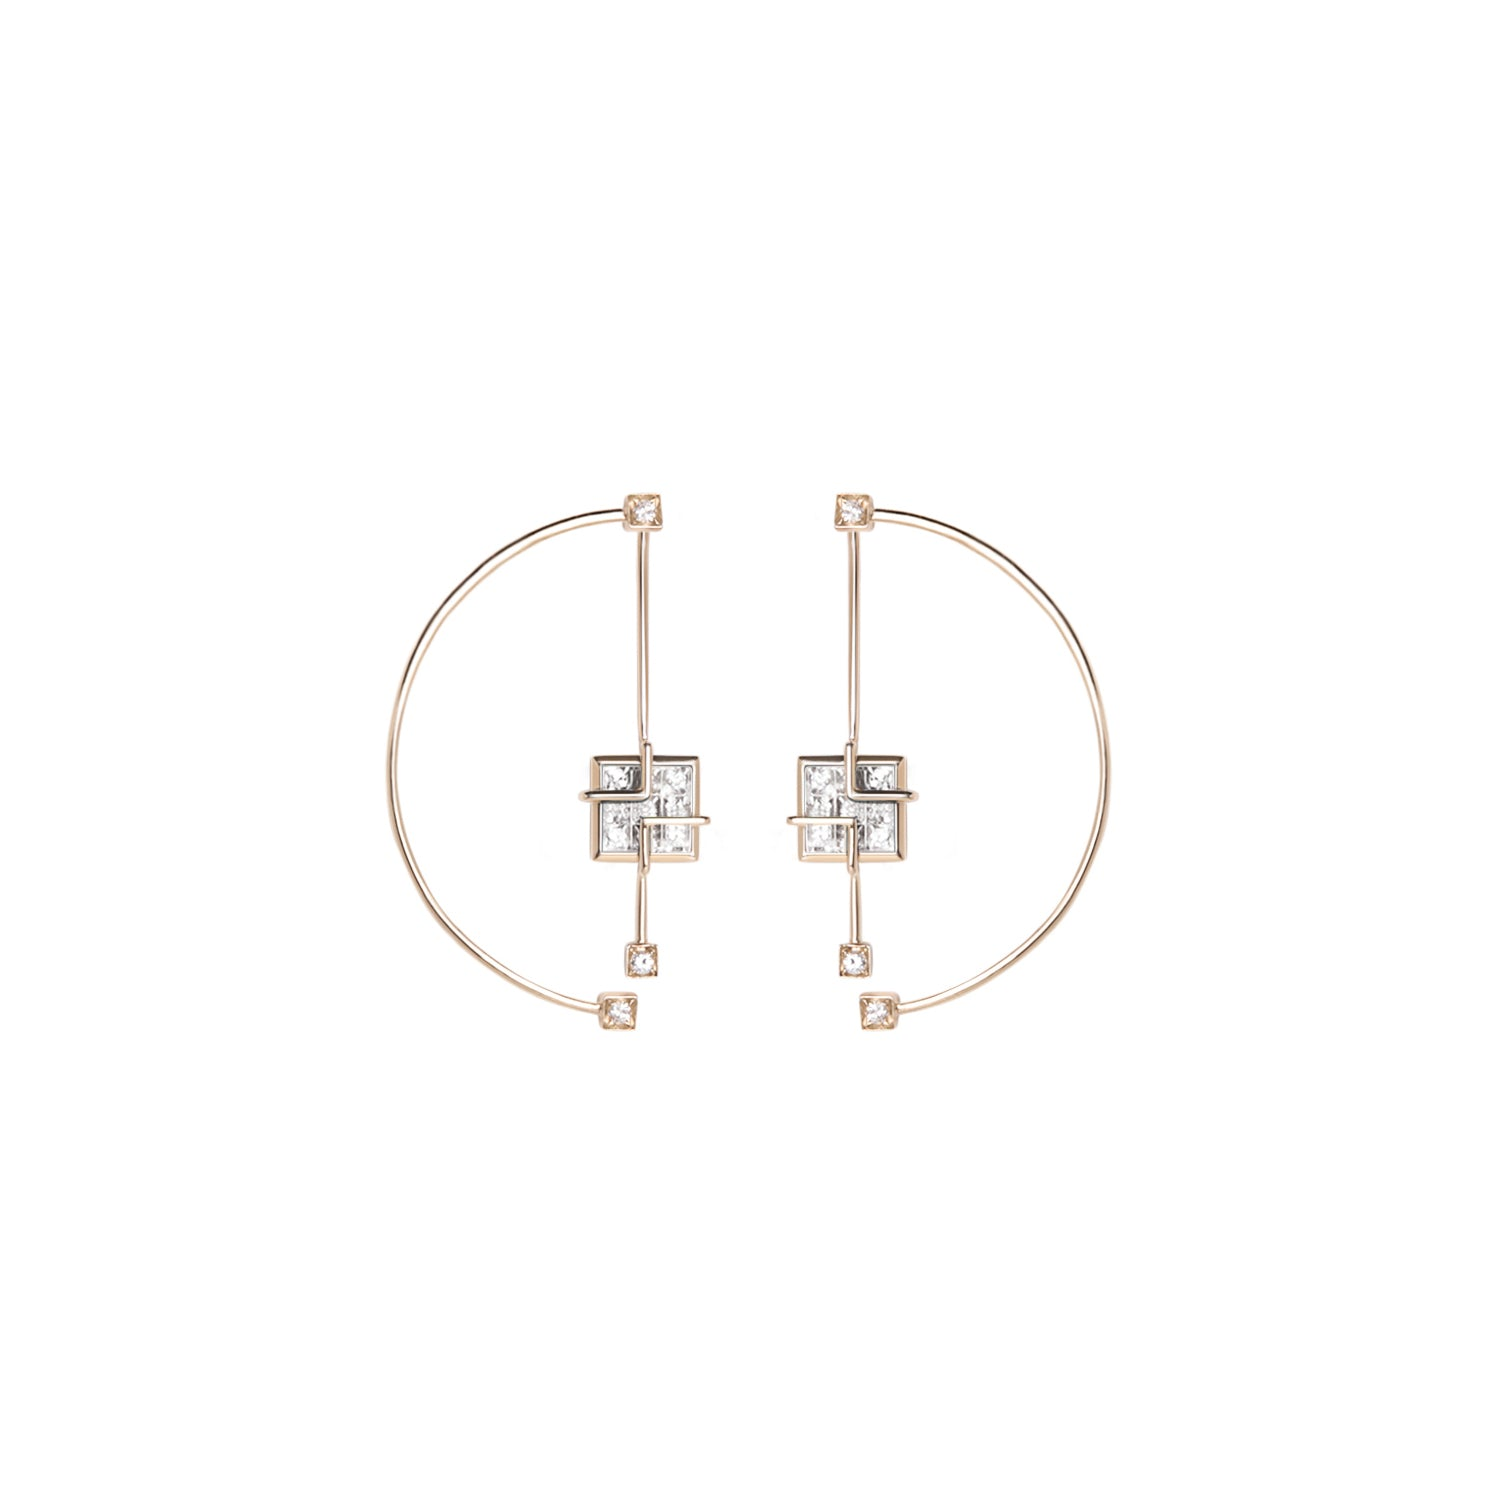 Arco Earrings by Sibylle von Munster for Broken English Jewelry